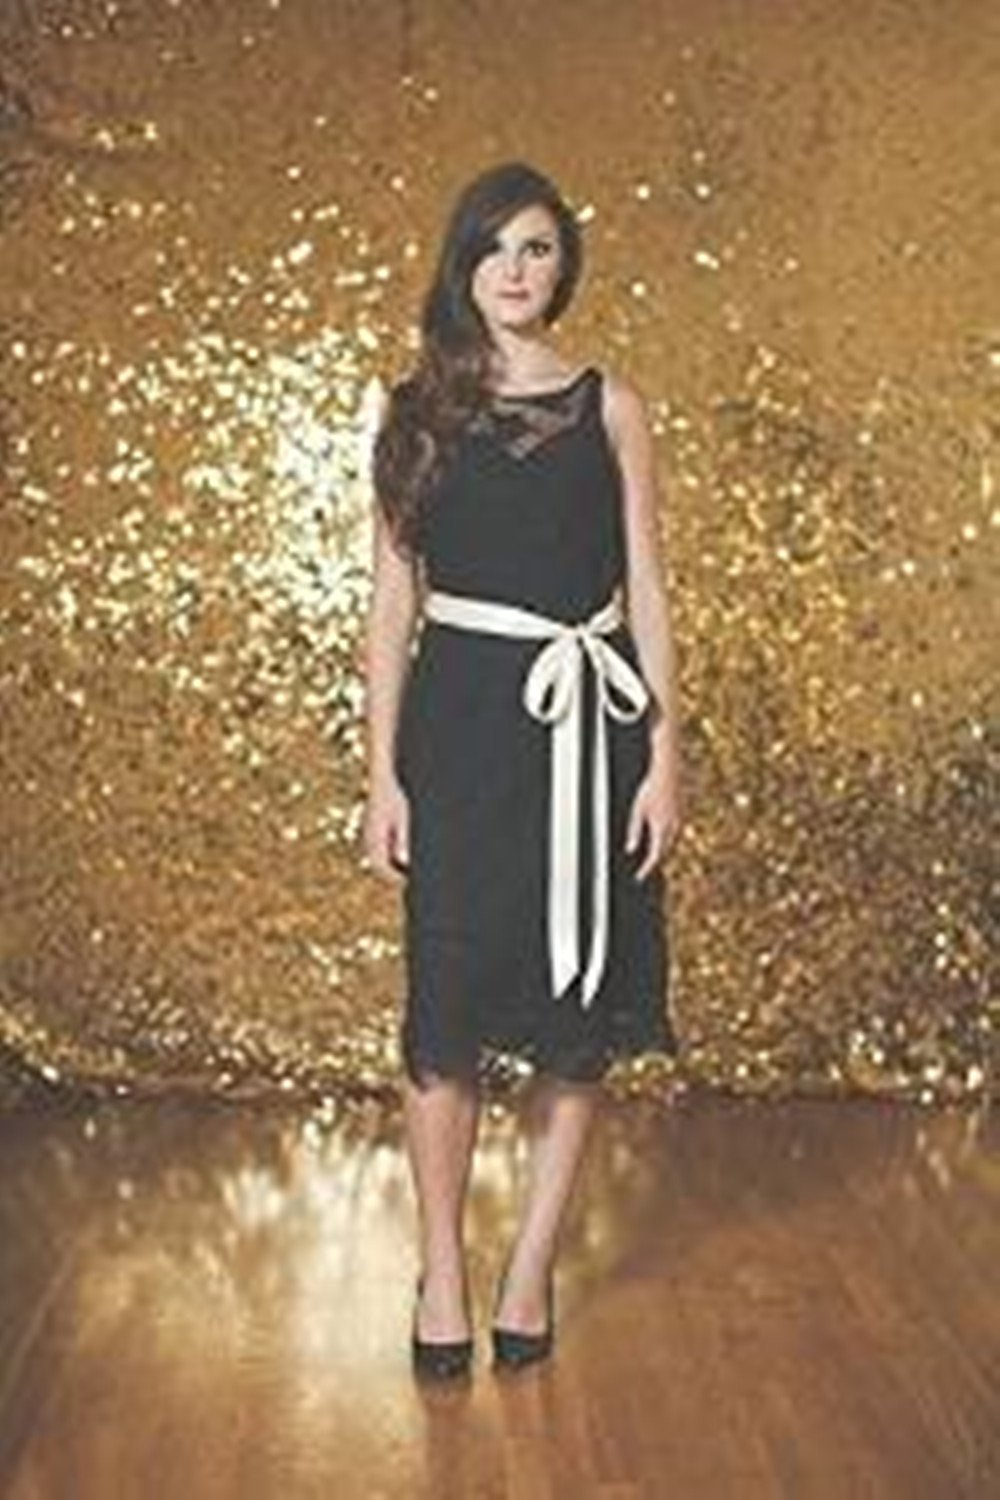 TRLYC 5ft6ft Gold Sequin backdrops, Sequin photo booth backdrop, Party backdrops, Wedding backdrops, sparkling backdrops , Christmas decoration